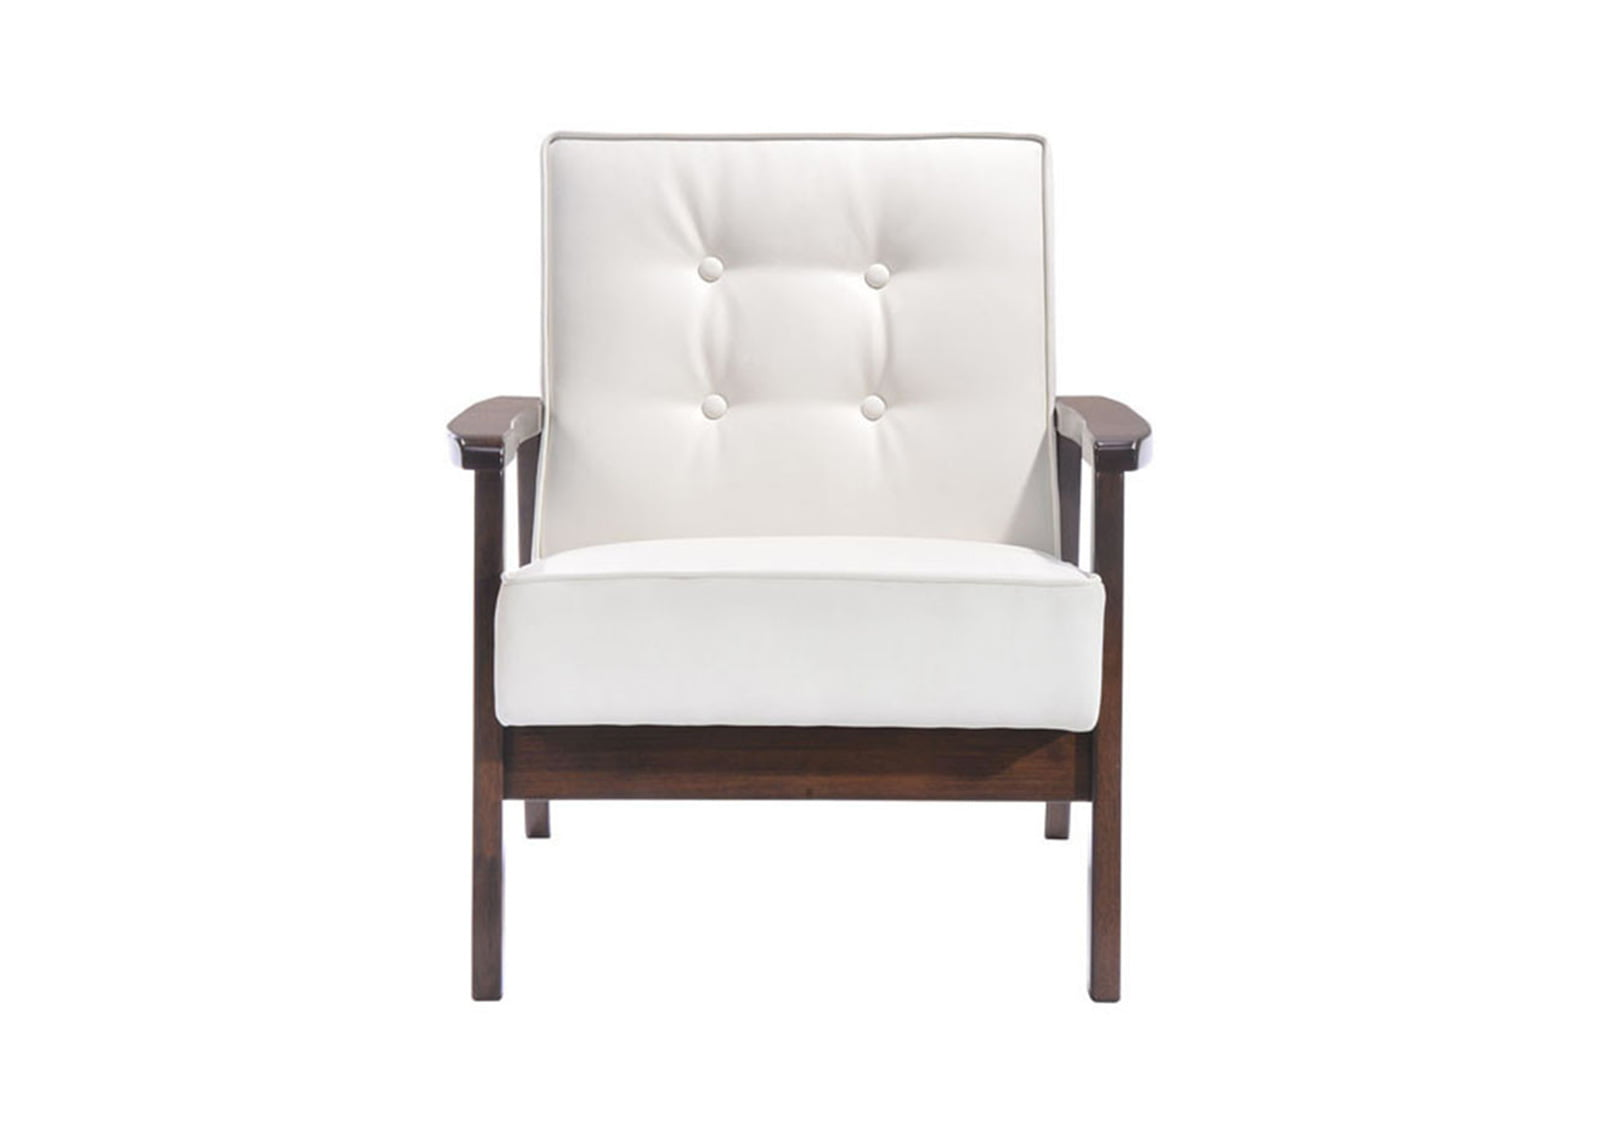 White Arm Chairs Aventura Arm Chair White Furnishplus